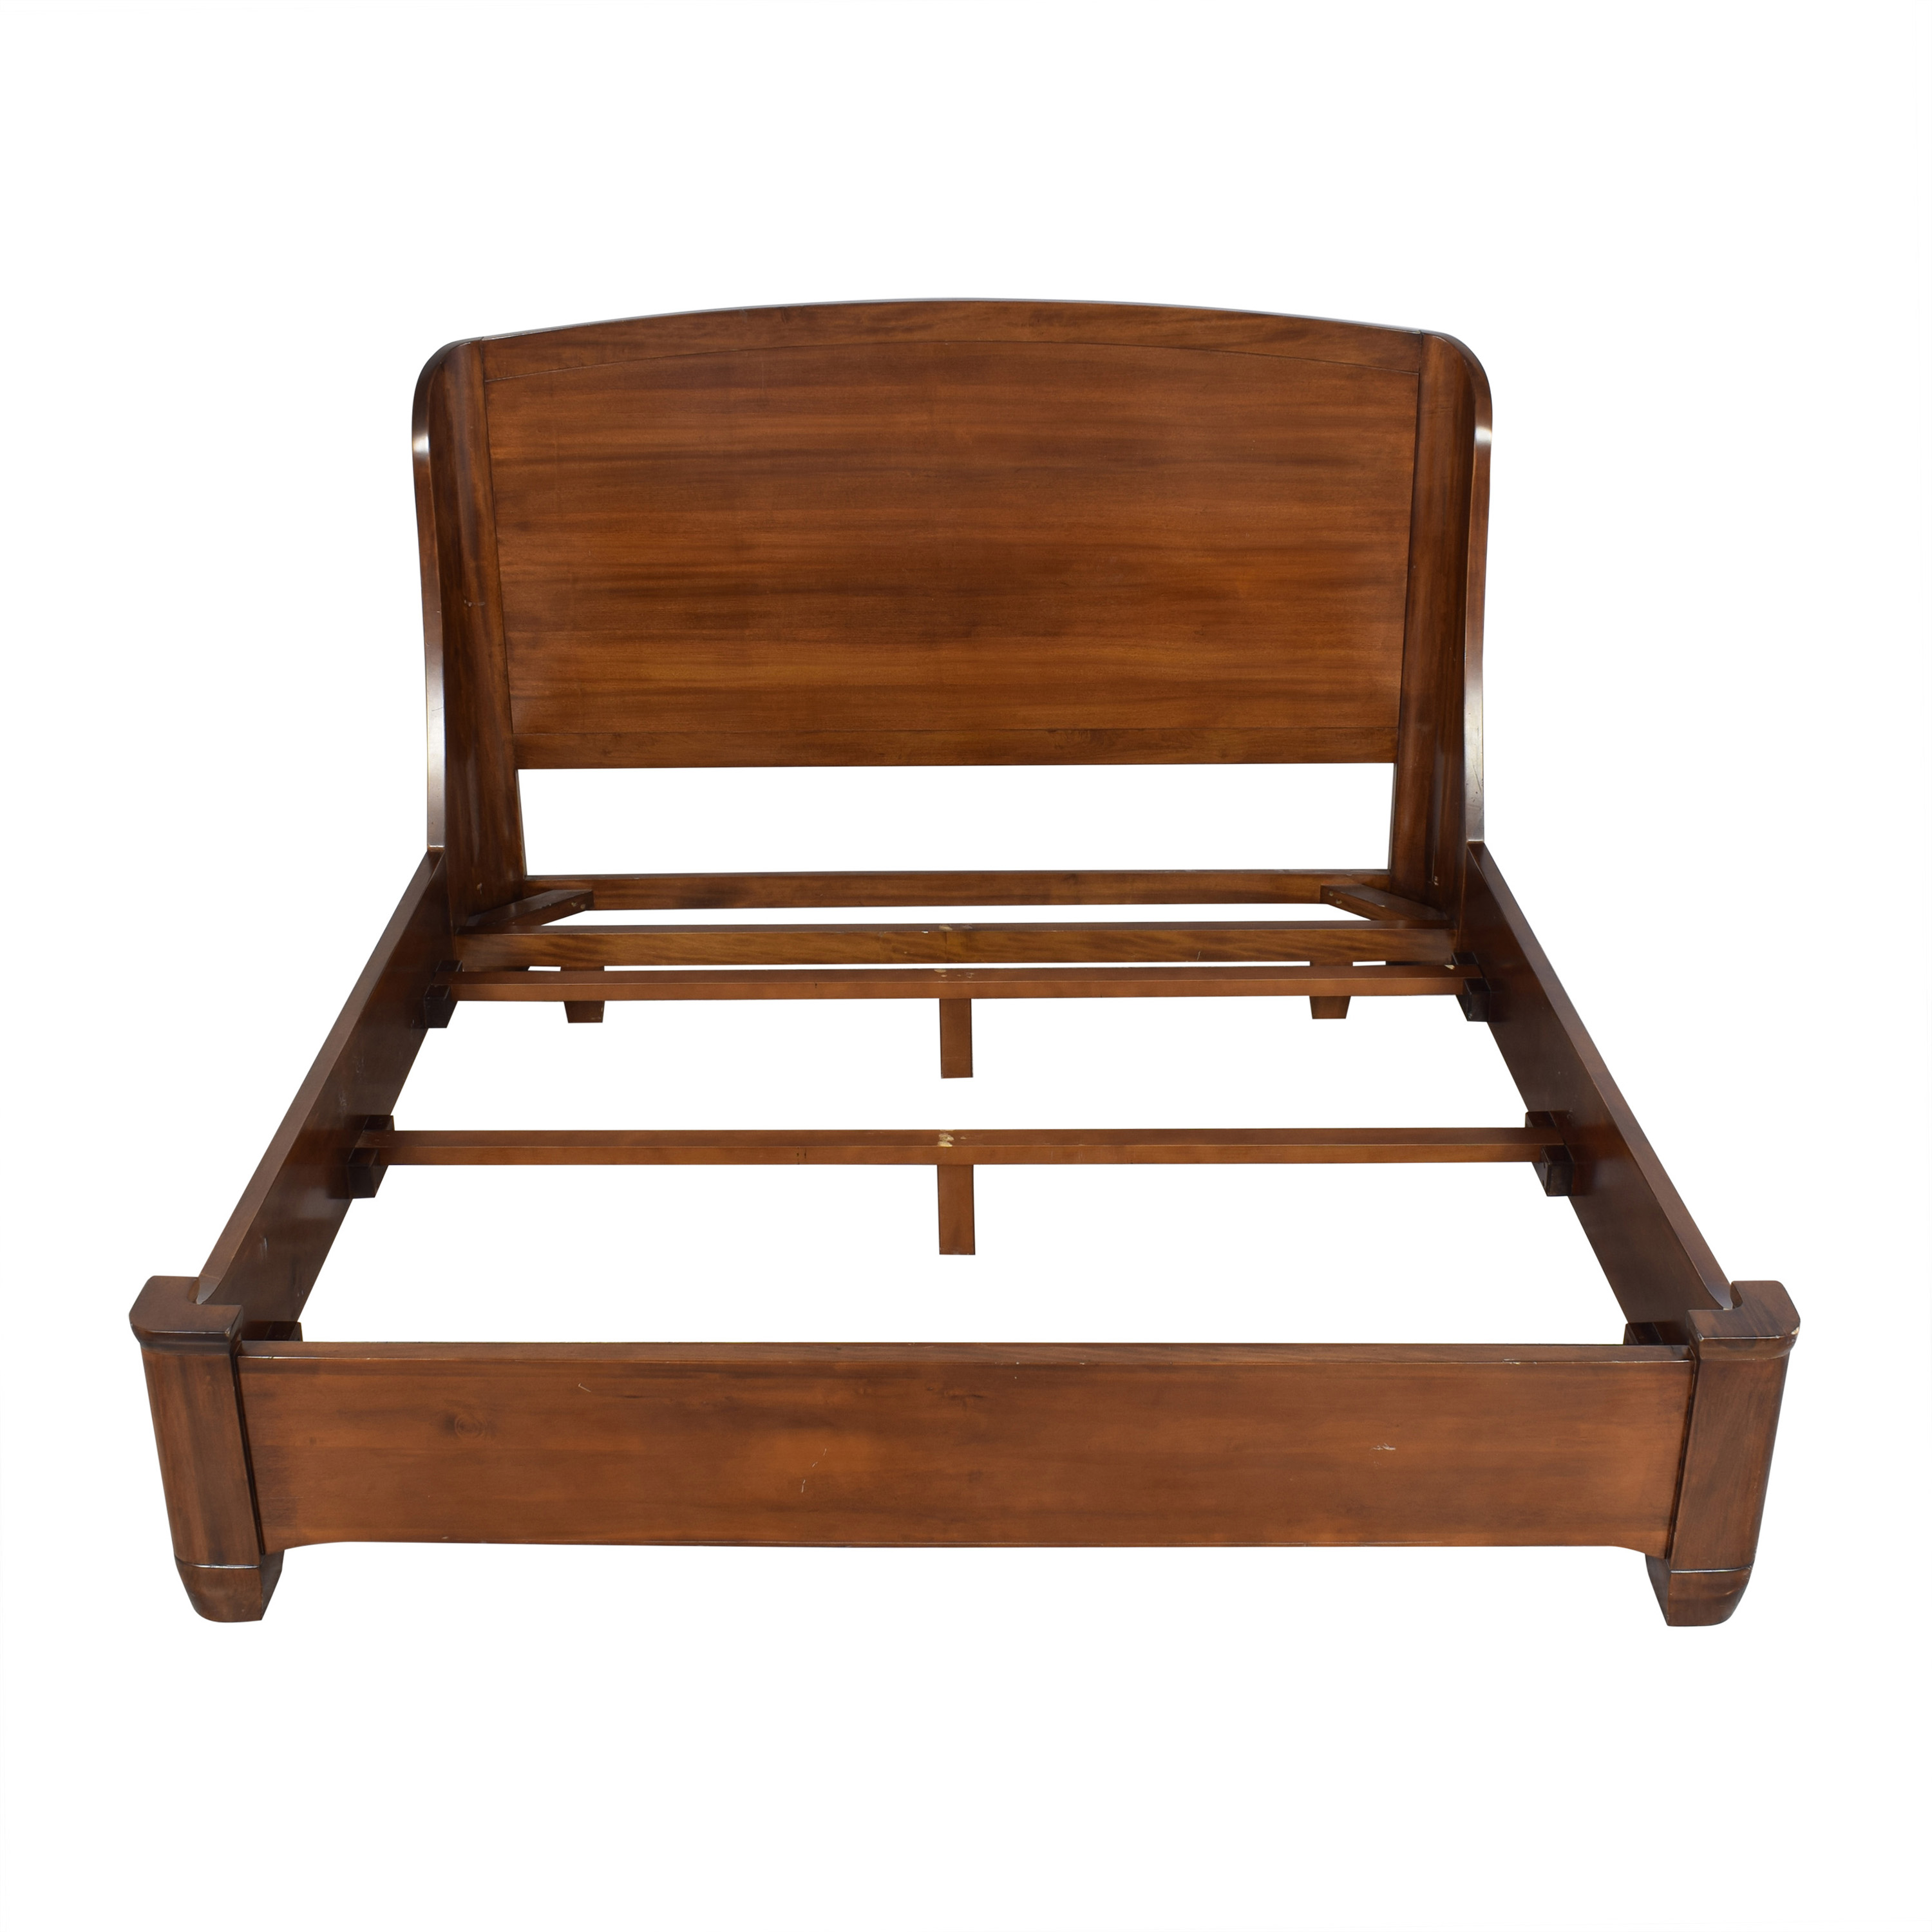 Chilean King Bed Frame dimensions